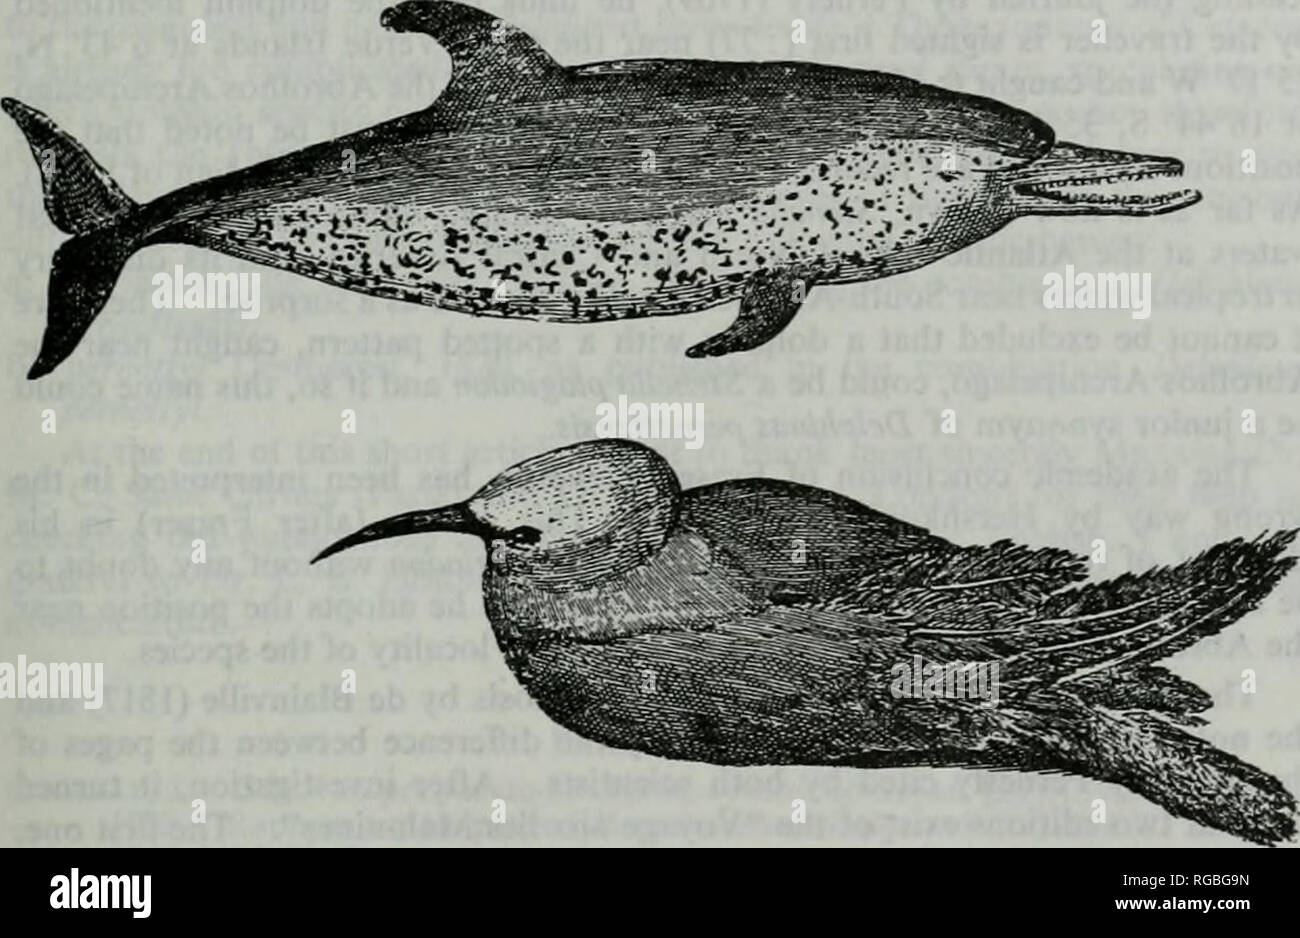 ". Bulletin of zoological nomenclature. Bulletin of Zoological Nomenclature 45 In another publication, two years later, Desmarest (1820 : 513) changed the name and called the species Delphinus Pernettyi. He did not indicate clearly he considered his spelling the right one, so in fact ""pernettyi"" is an incorrect subsequent spelling and therefore nomenclatorially non-existent. But even if we accept that Desmarest intended to correct the name, then it is an unjustified emendation and that thereby the name pernettyi has become a junior objective synonym of pernettensis.. Fig. 1. Delphinus - Stock Image"